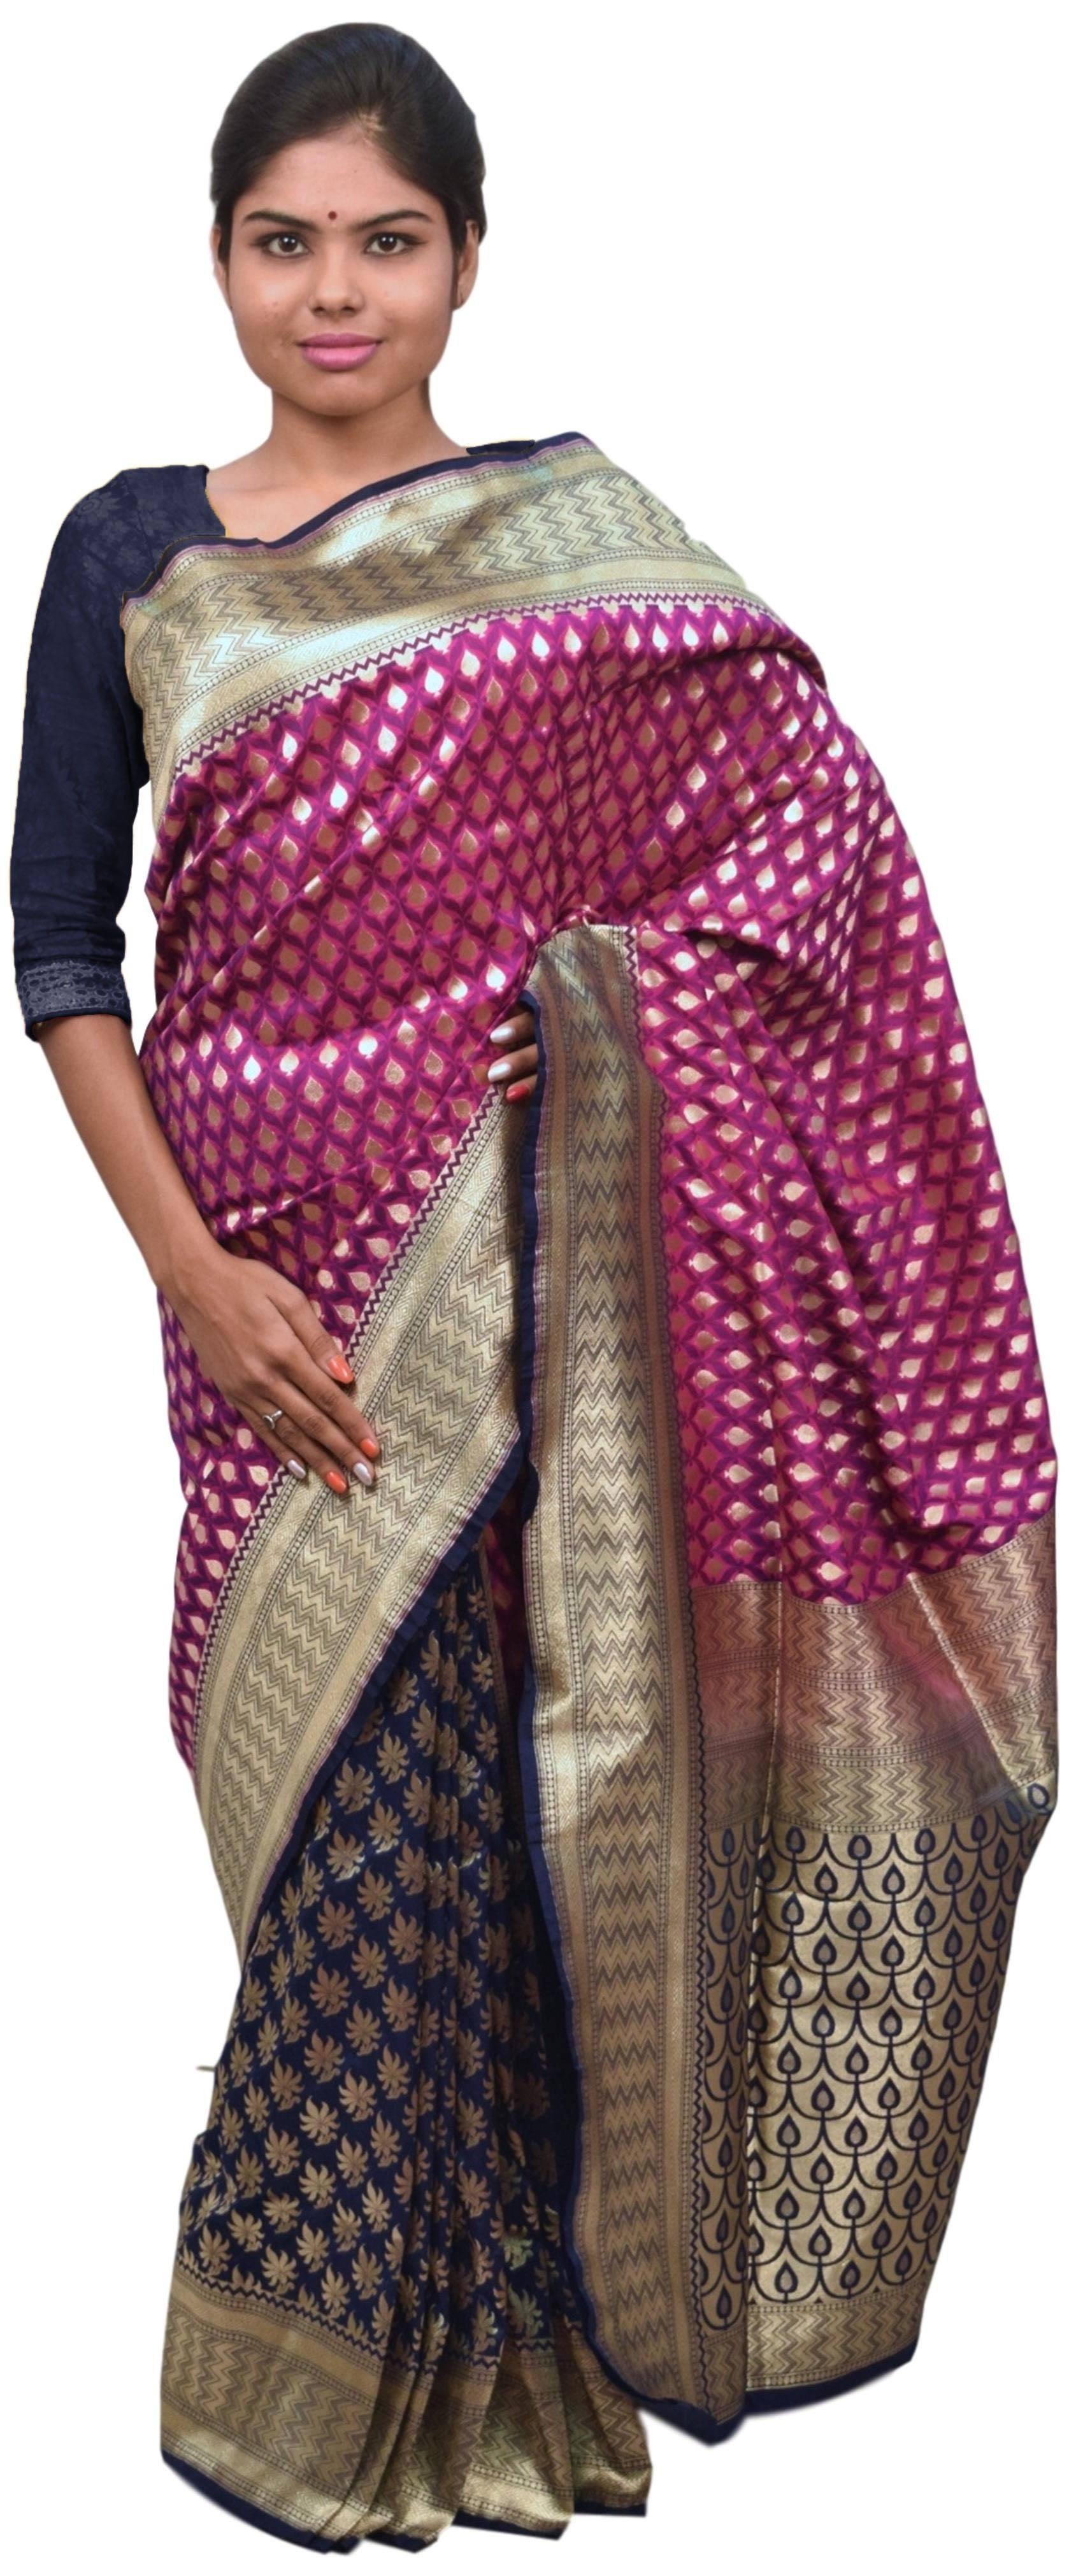 Wine & Blue Designer Bridal Hand Weaven Pure Benarasi Zari Work Saree Sari With Blouse